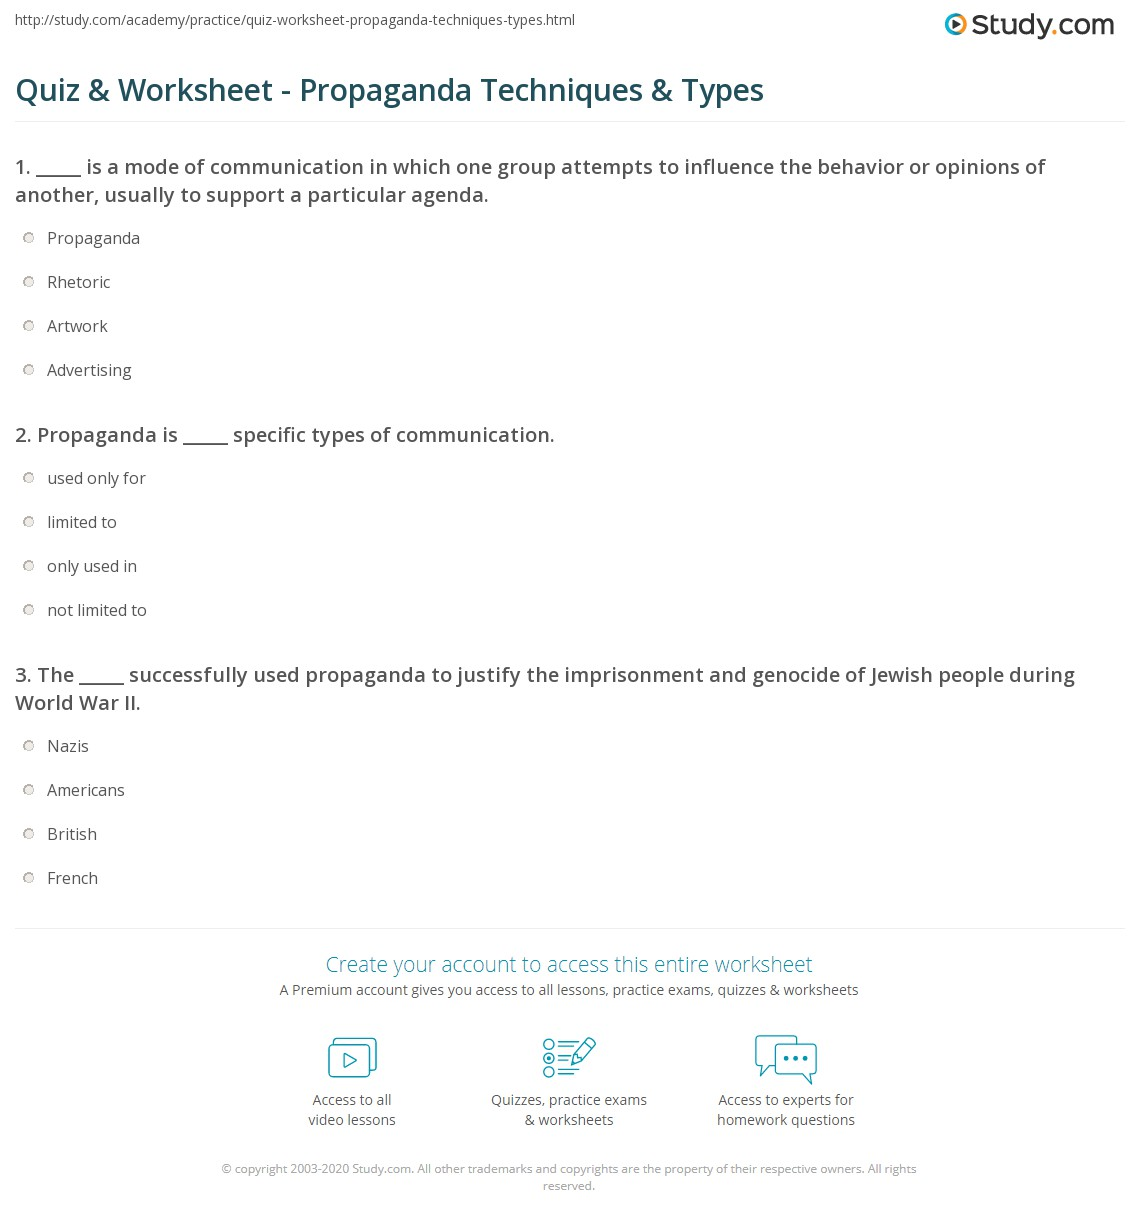 {Quiz Worksheet Propaganda Techniques Types – Propaganda Techniques Worksheet